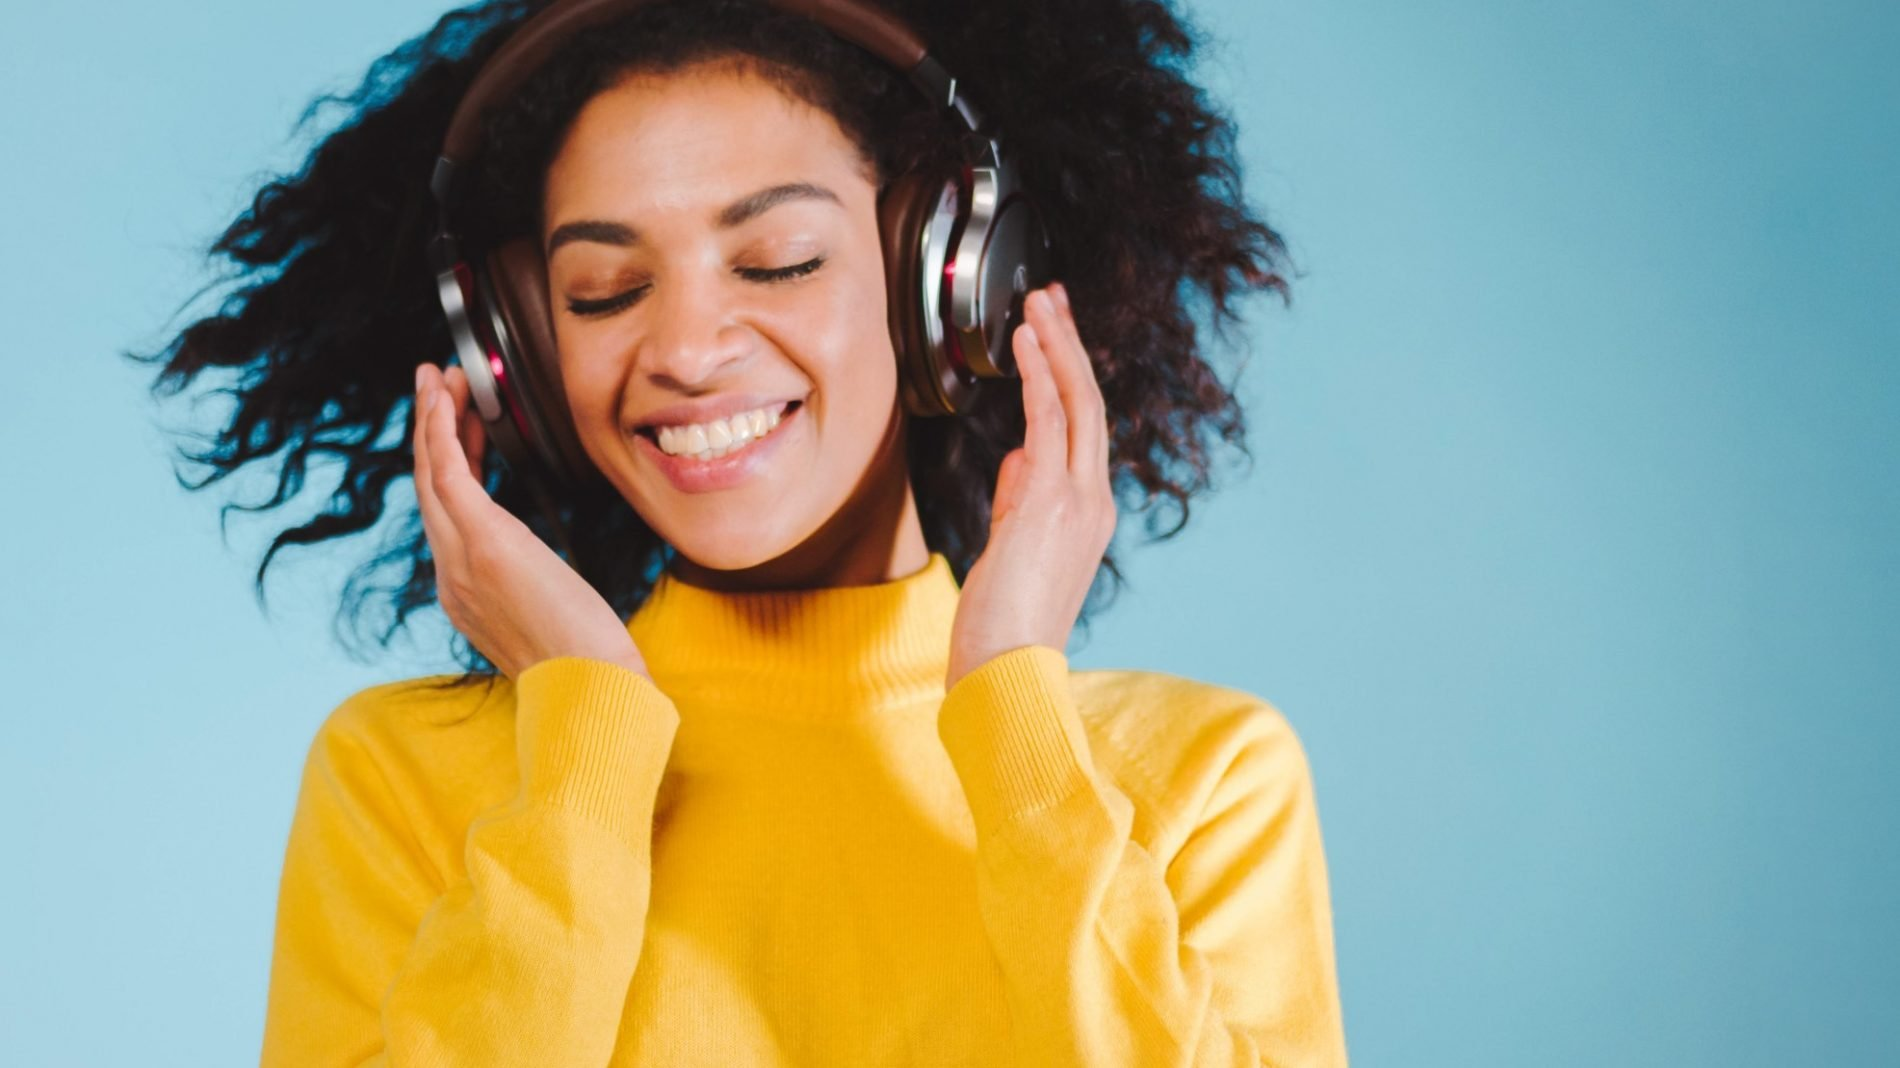 A young woman wearing headphones and listening to music